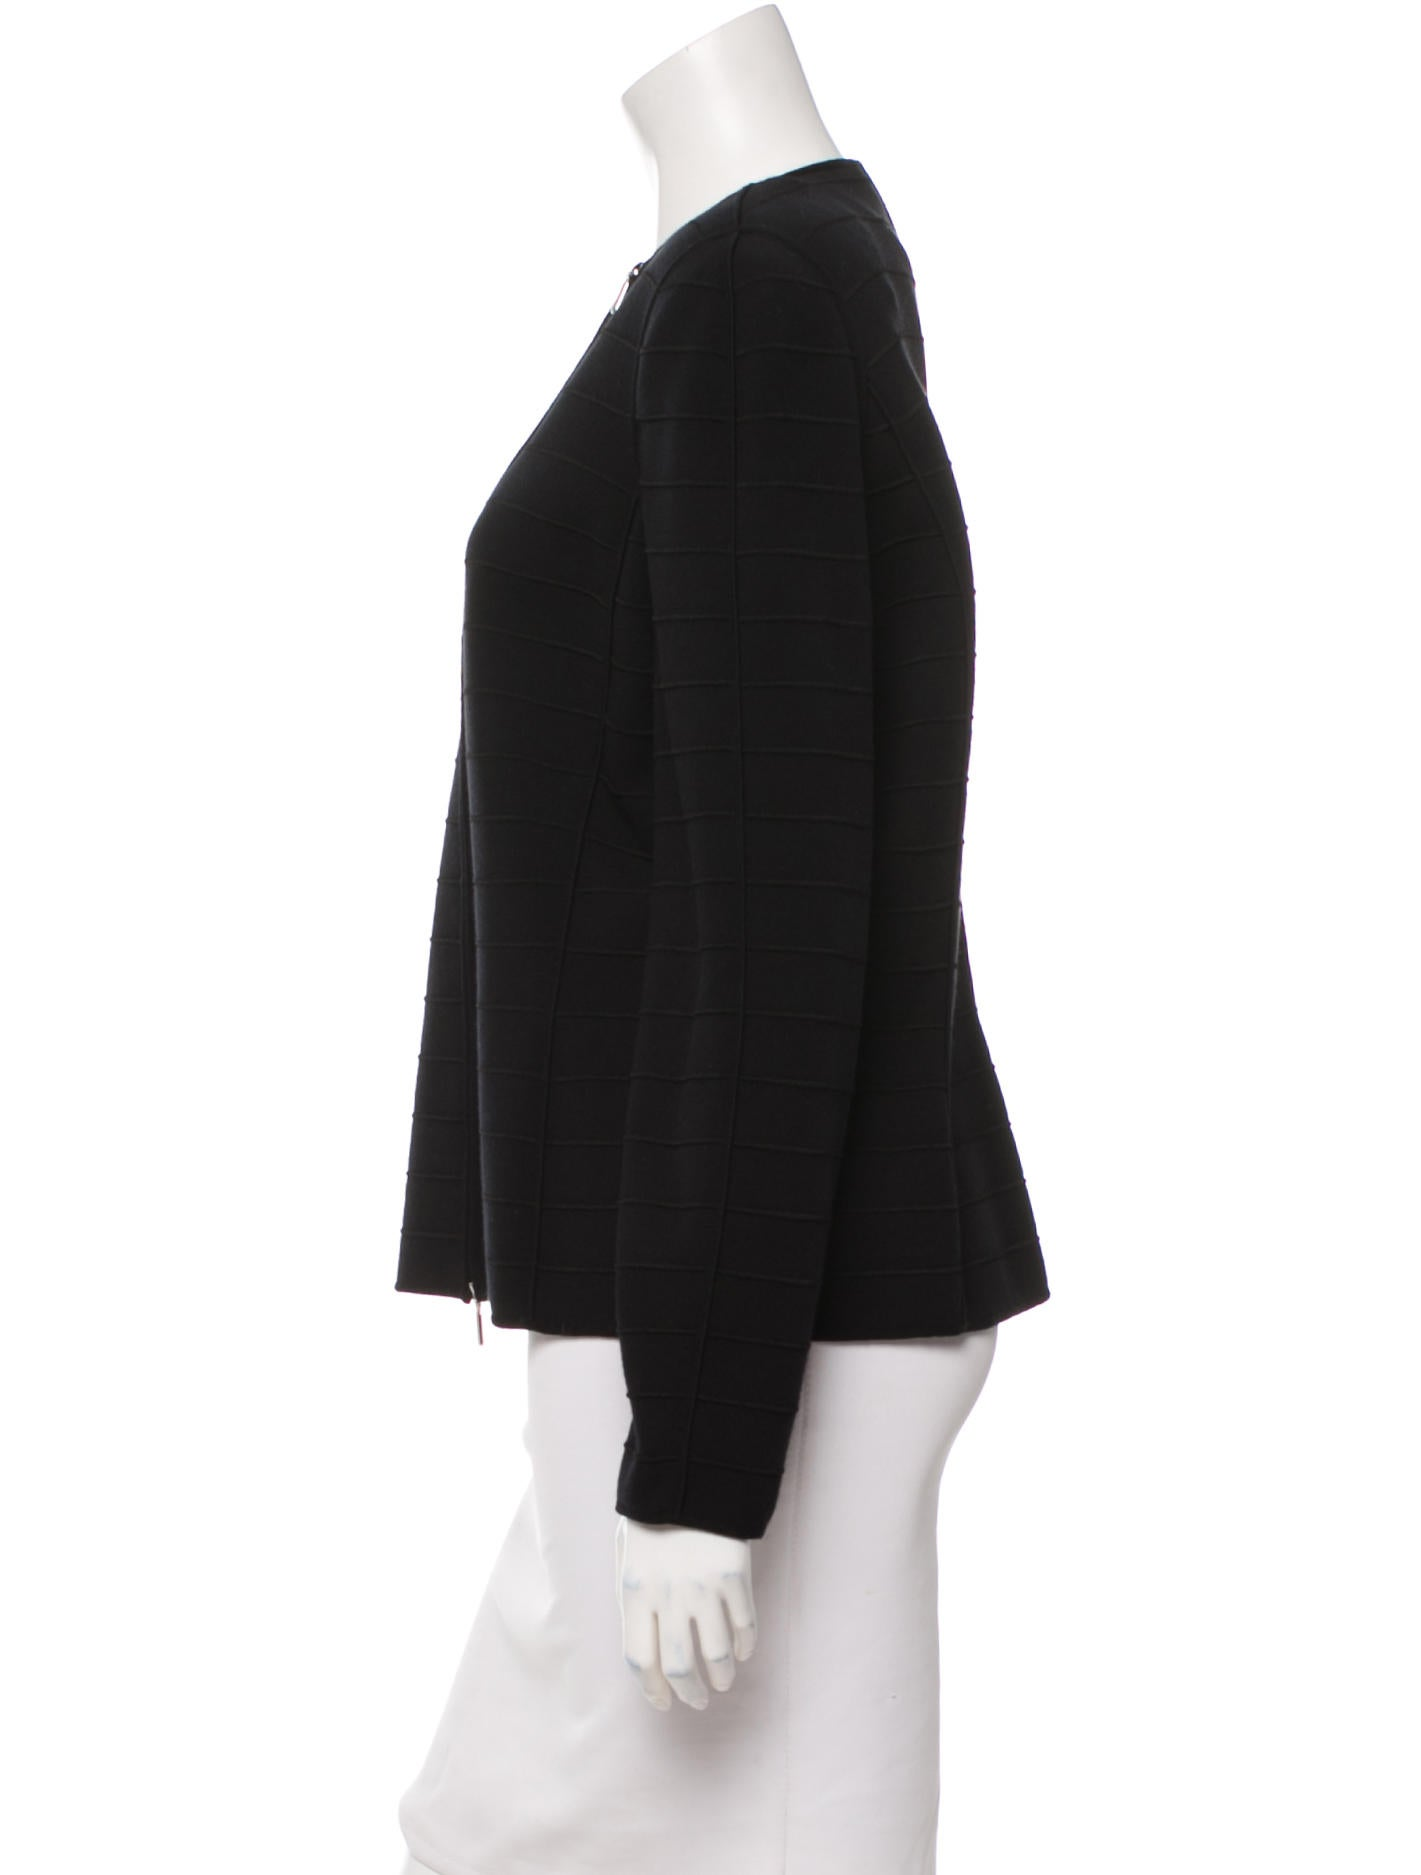 Giorgio Armani Knit Evening Jacket w/ Tags - Clothing - GIO21832 The RealReal